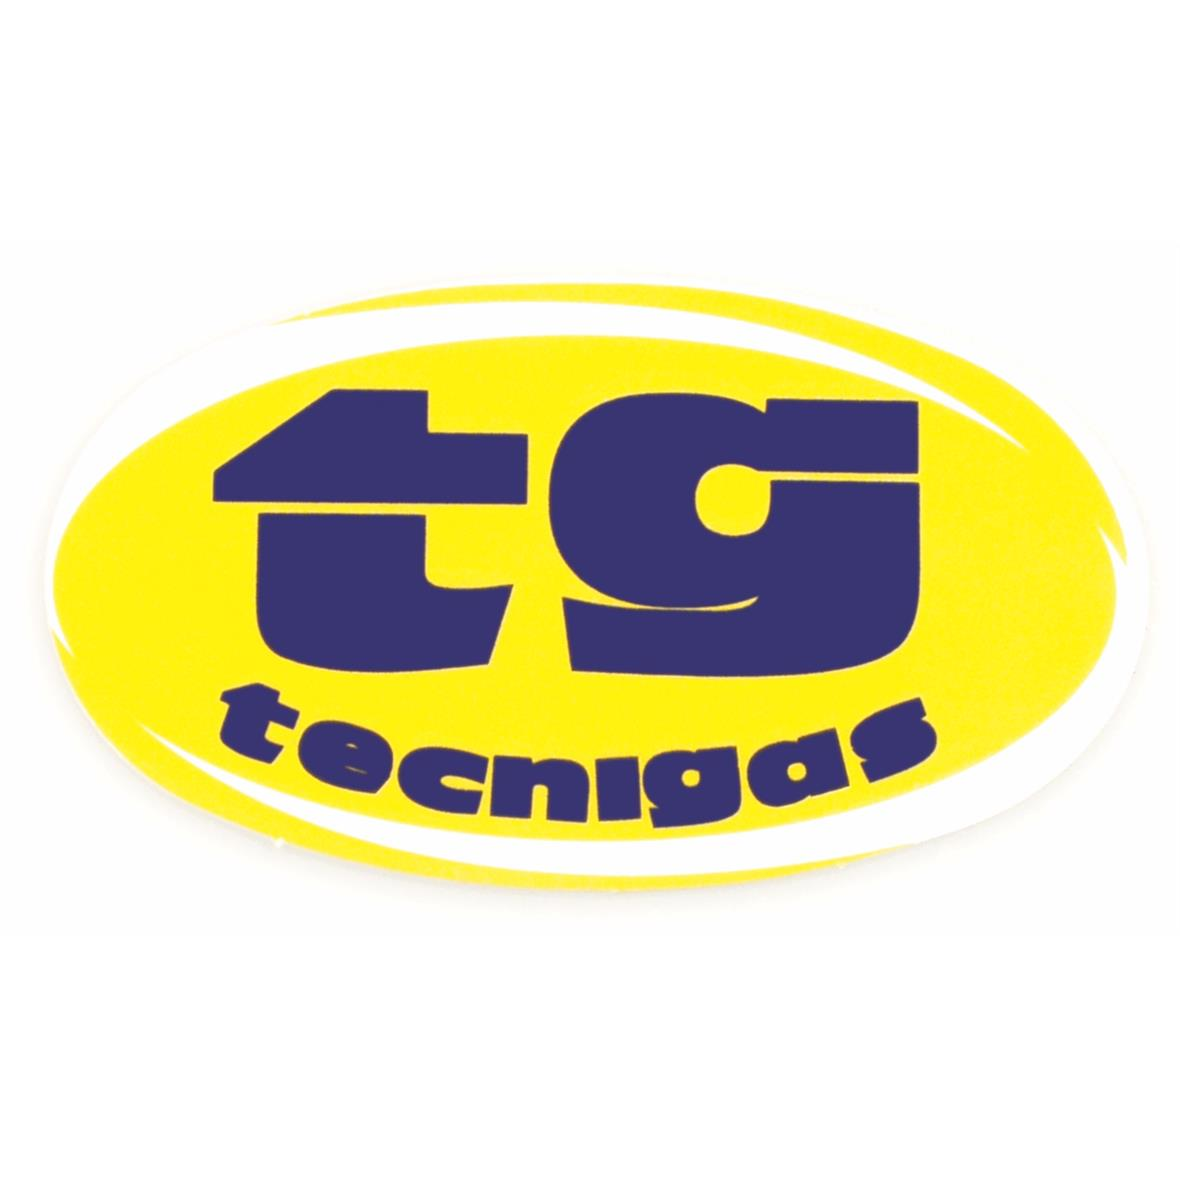 Product Image for 'Sticker TECNIGAS logo ovalTitle'